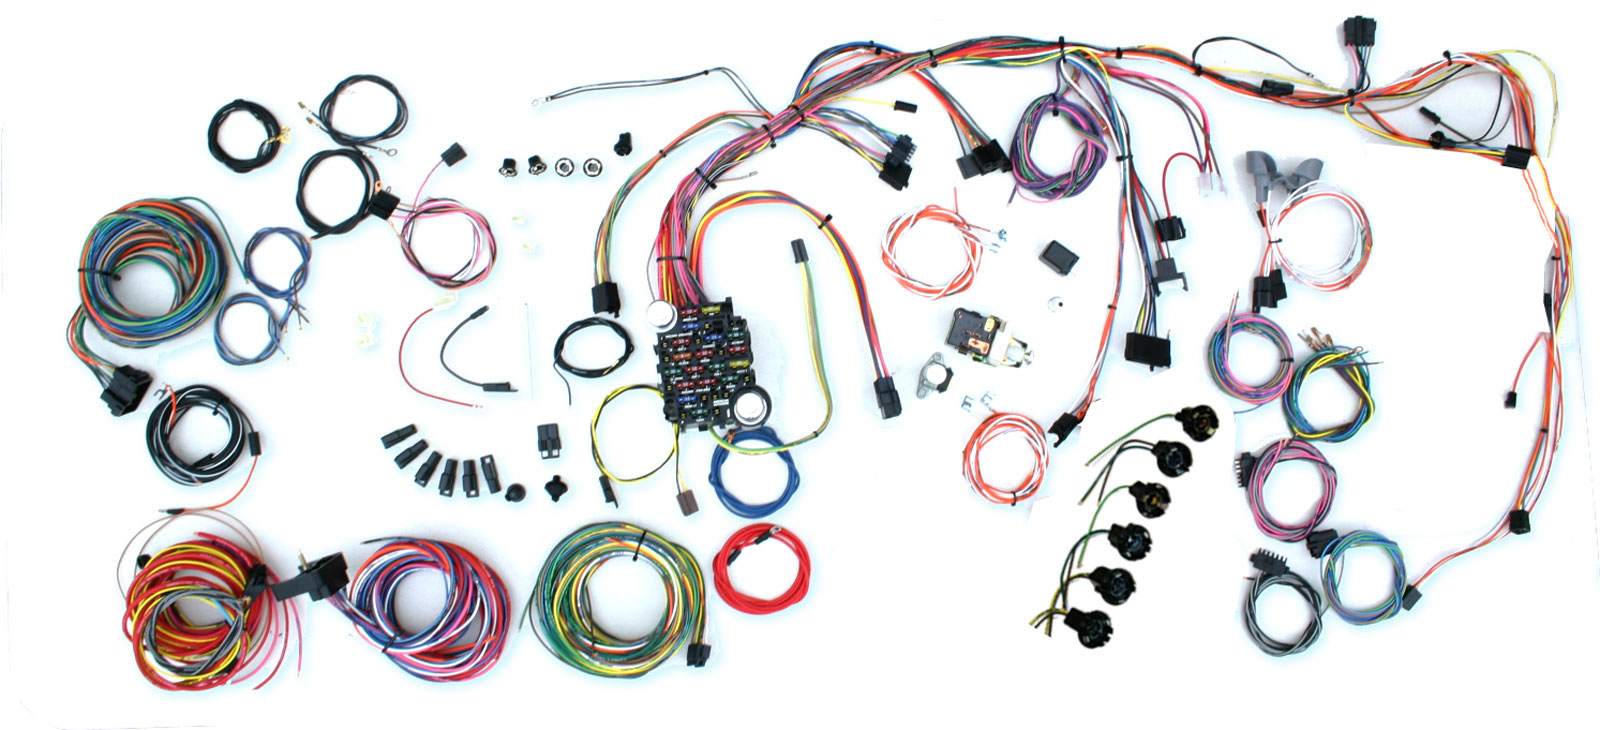 Fy 6892  Classic Wiring Harness Wiring Diagram